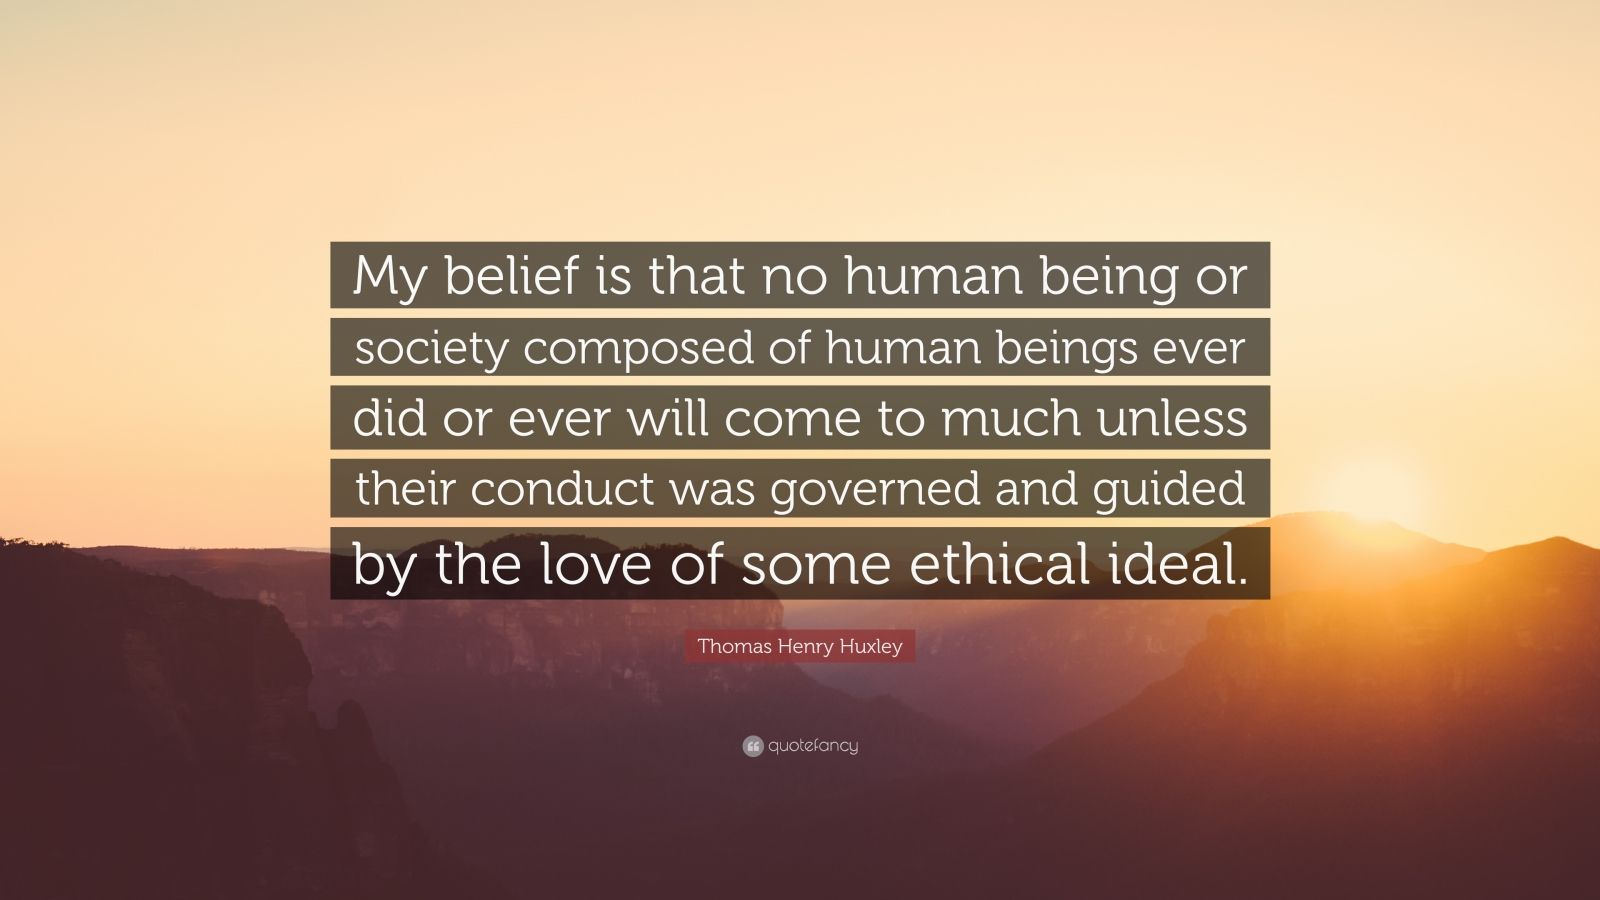 """Thomas Henry Huxley Quote: """"My belief is that no human being or society composed of human beings ever did or ever will come to much unless their conduct was governed and guided by the love of some ethical ideal."""""""